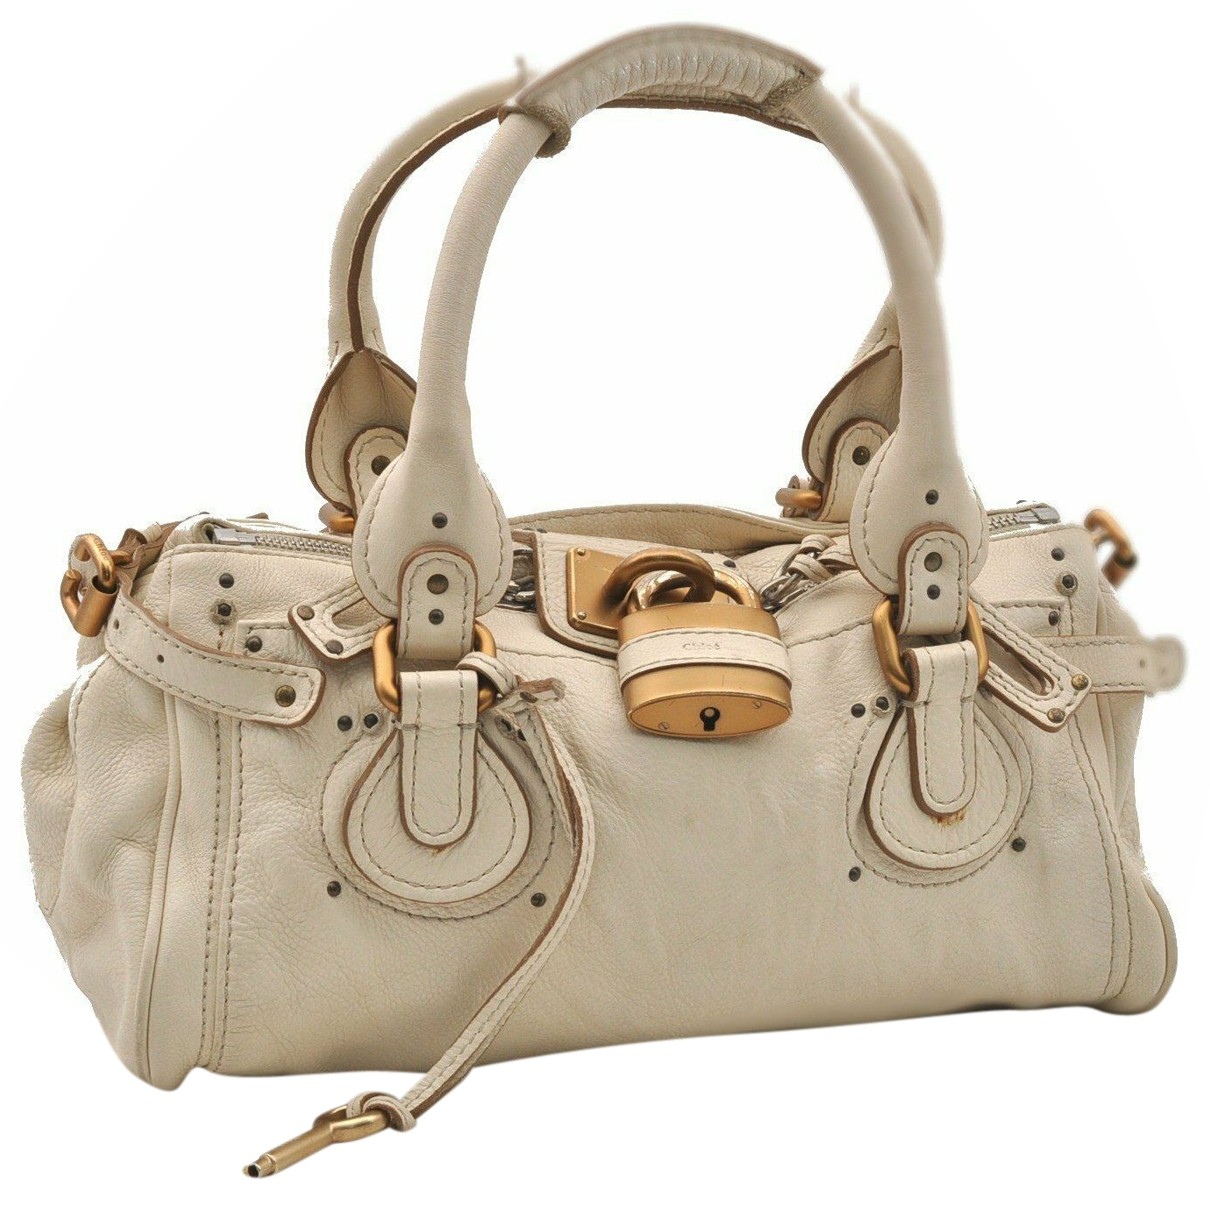 Chloé N White Leather handbag for Women N